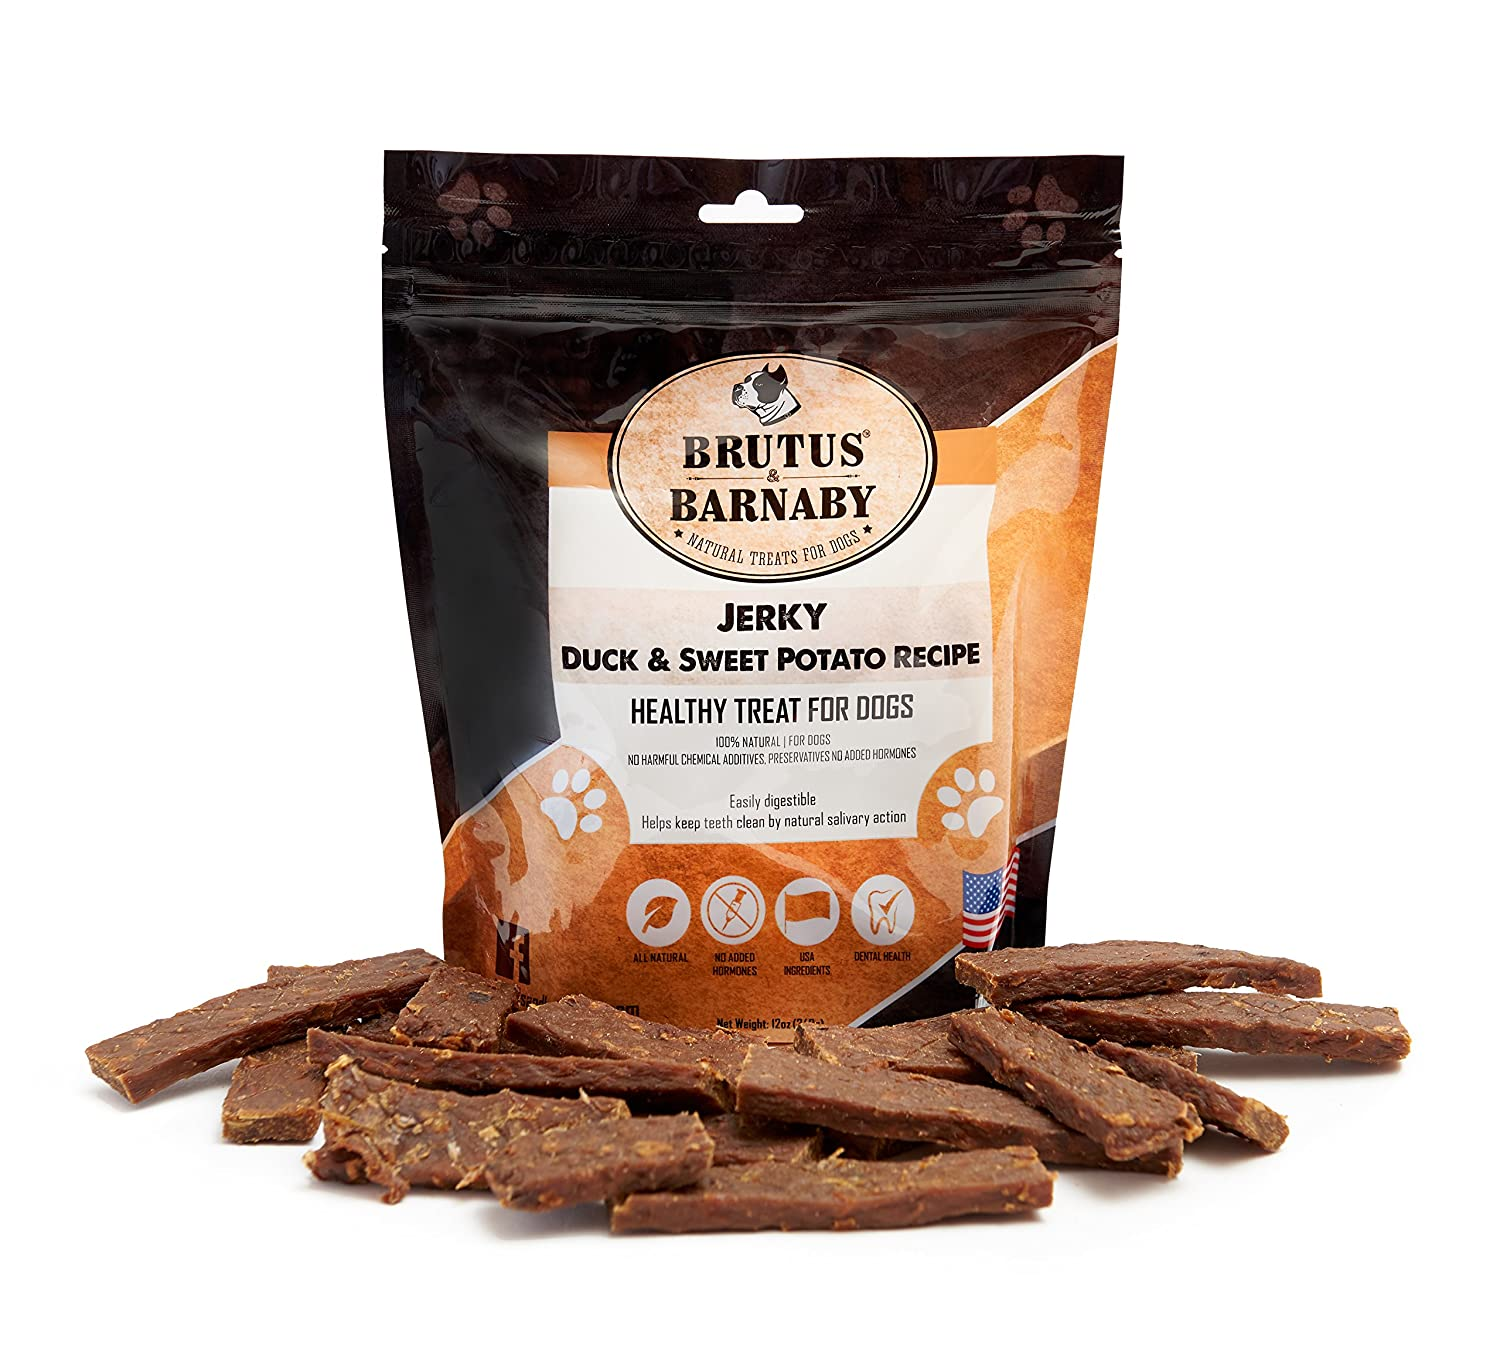 Brutus & Barnaby USA Duck and Sweet Potato Jerky, Grain Free with No Added Hormones, Our Moist Treats are High In Iron, Fiber and Vitamin's, Great as Training Rewards